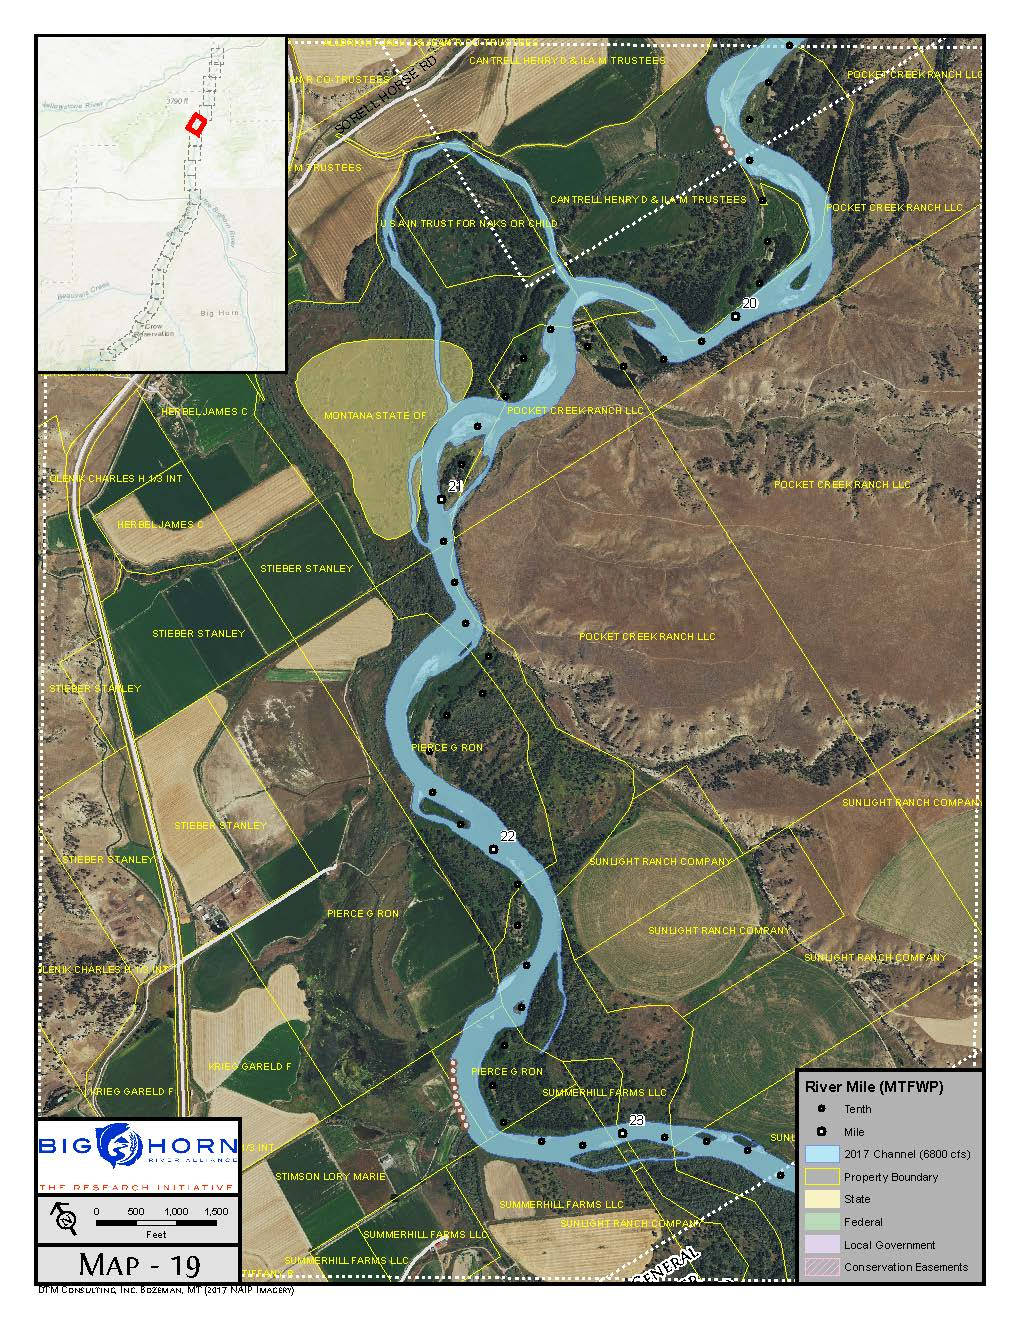 Big Horn River Atlas v5 wOwners_Page_19.